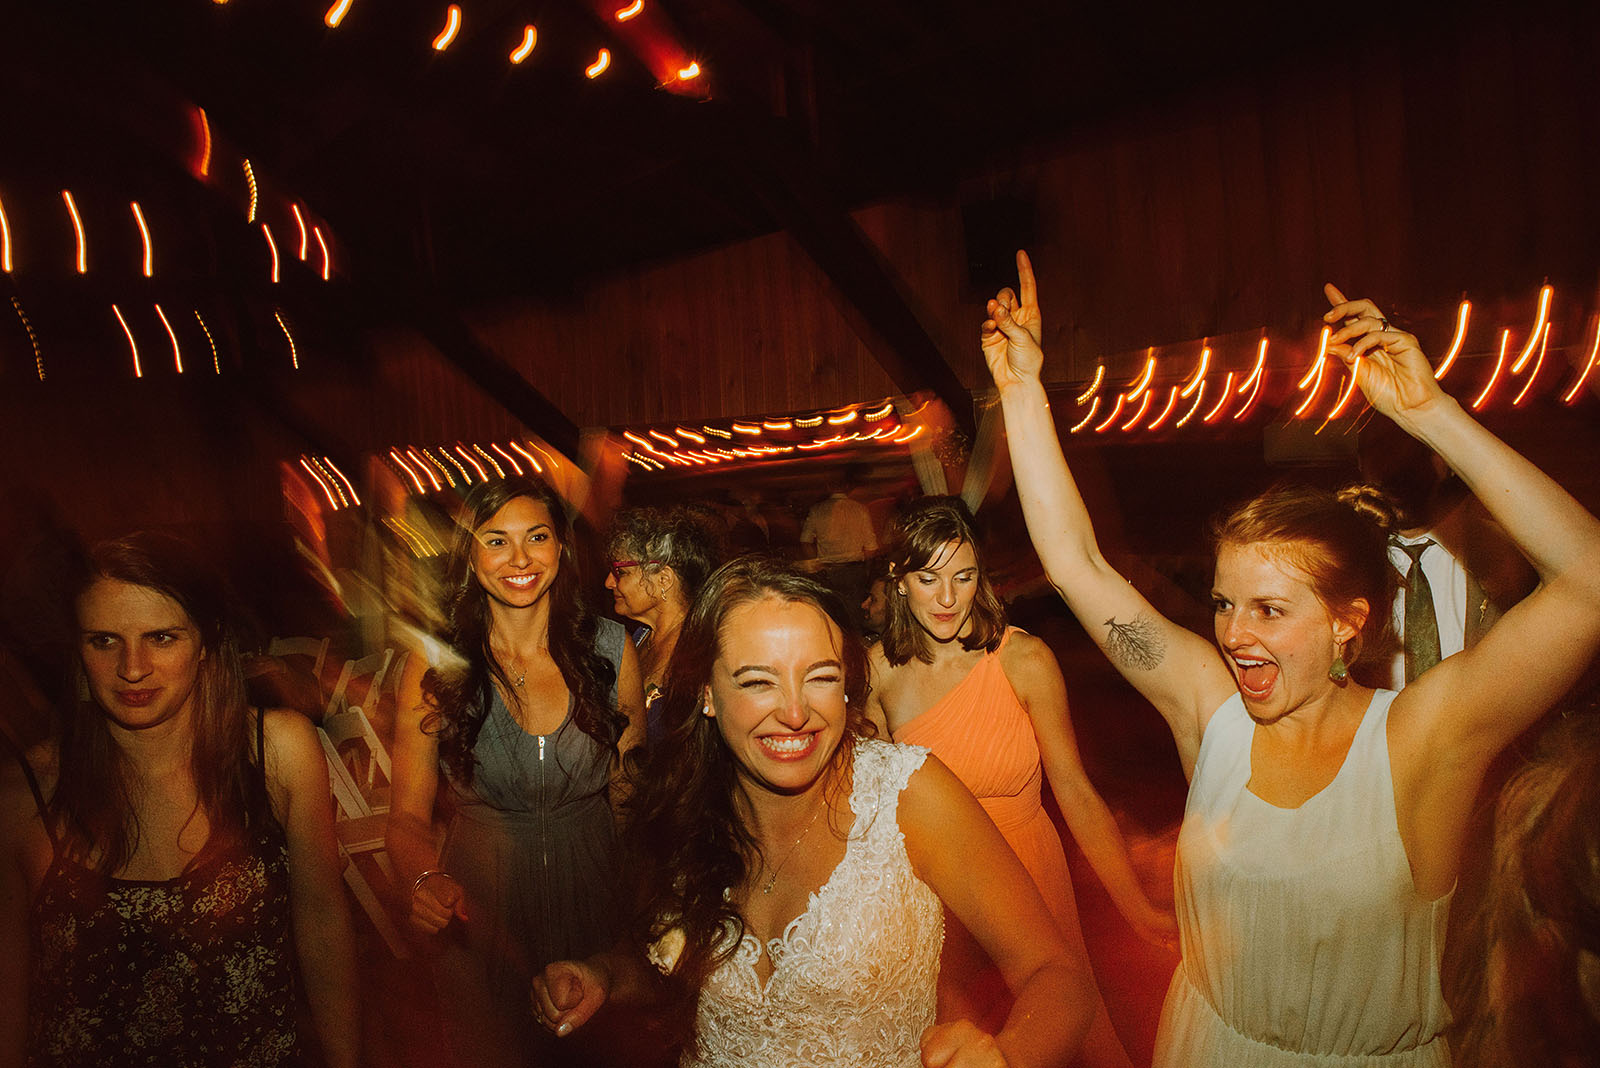 Guests partying on the dance floor at a Cedarville Lodge Wedding reception